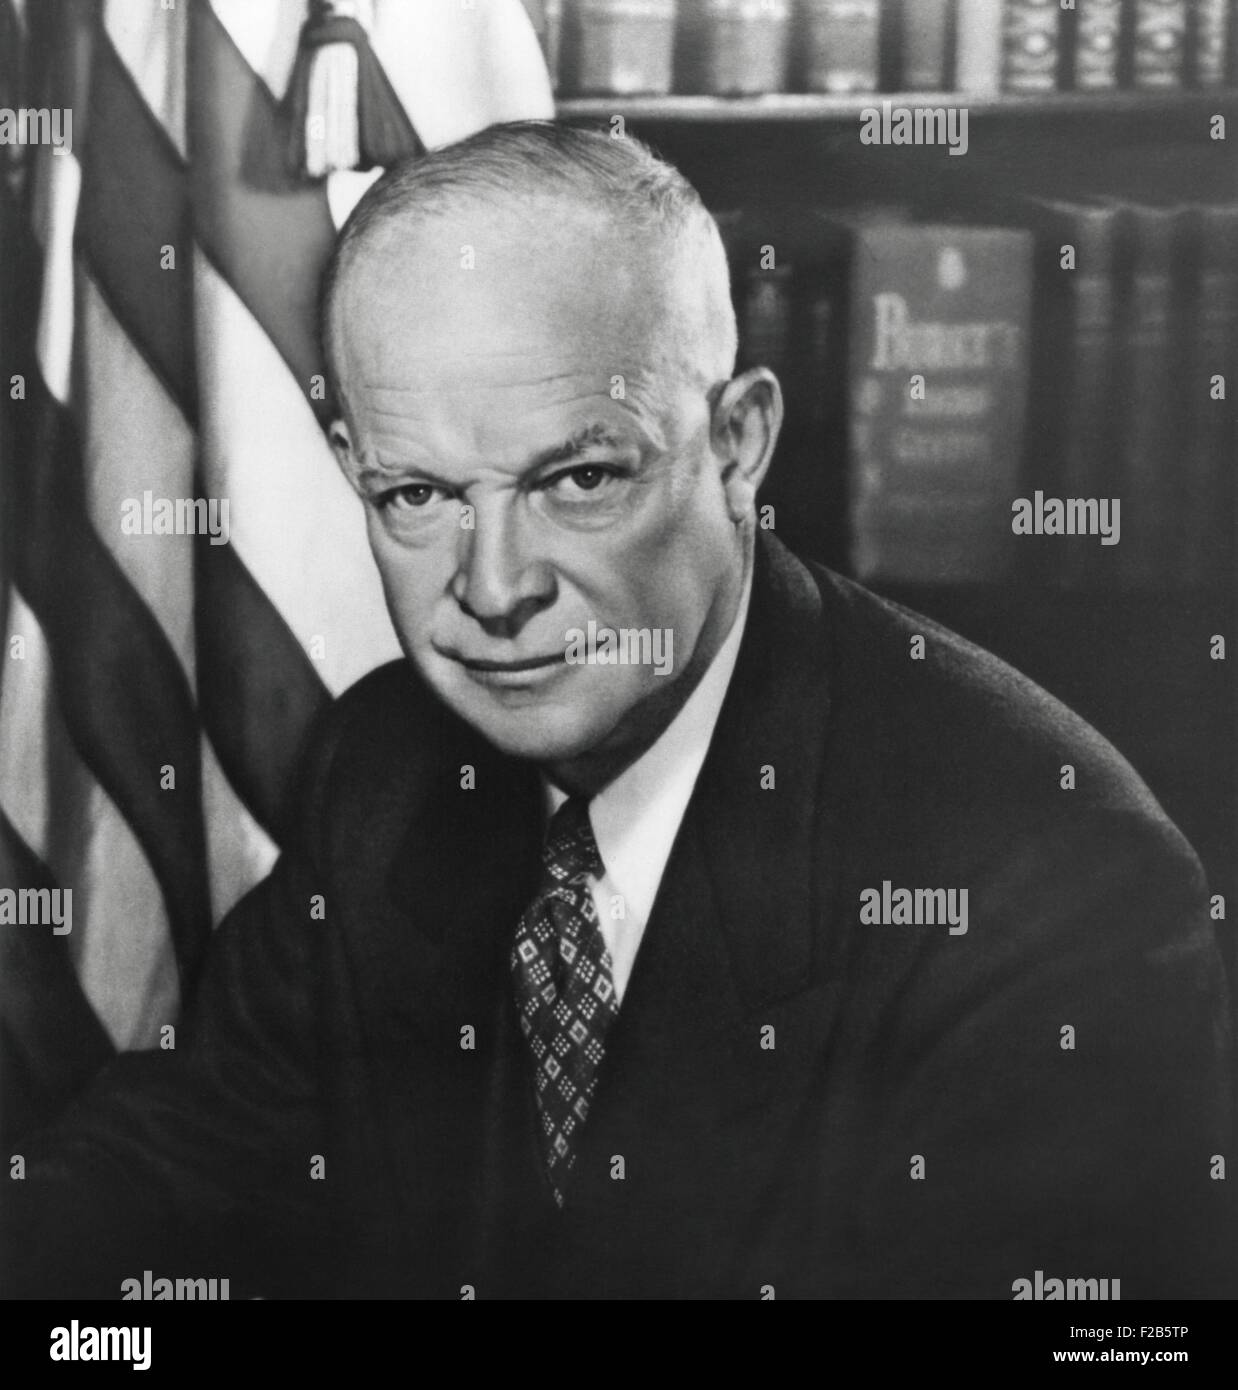 President Dwight Eisenhower. 1953 photo by George Tames. - (BSLOC_2014_16_48) - Stock Image